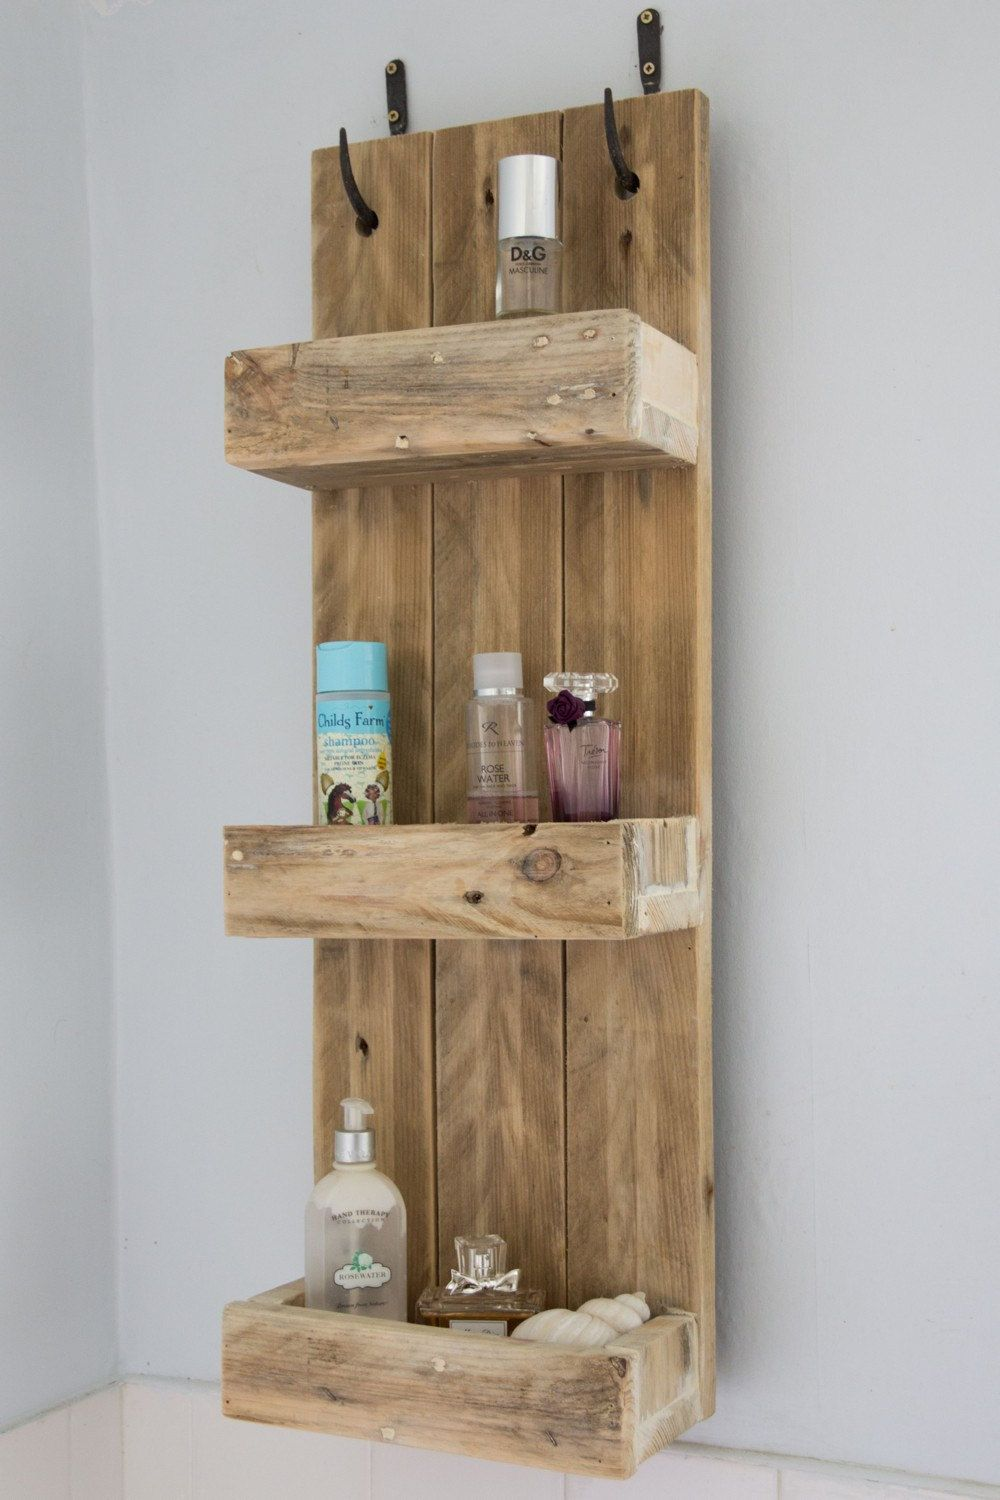 Depot Leiterregal Rustic Bathroom Shelves Made From Reclaimed Pallet Wood Home